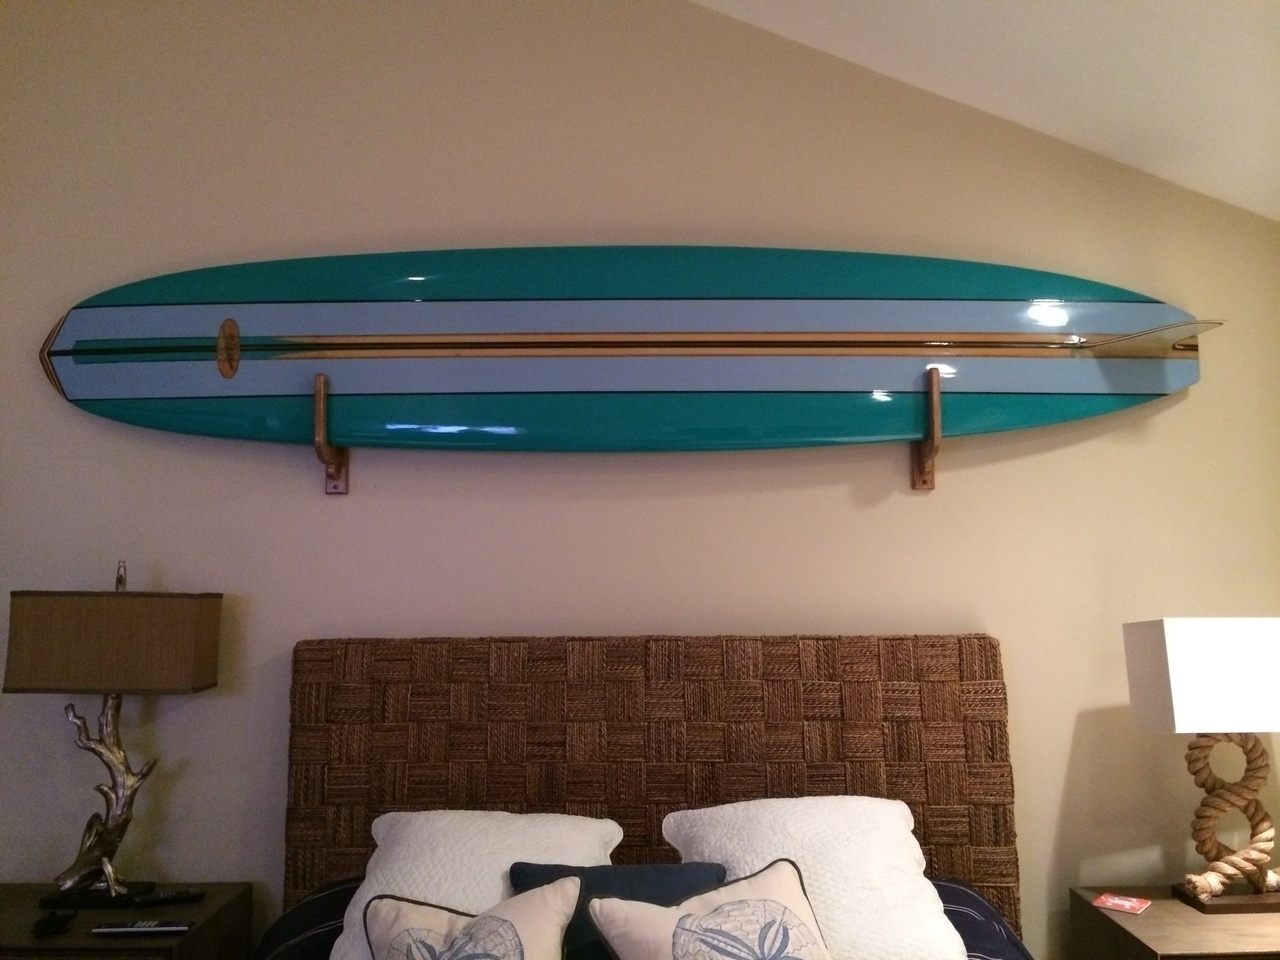 Surfboard Wall Art Regarding Famous Unfinished Surfboard Wall Decor — Room Decor : How To Select (View 15 of 20)